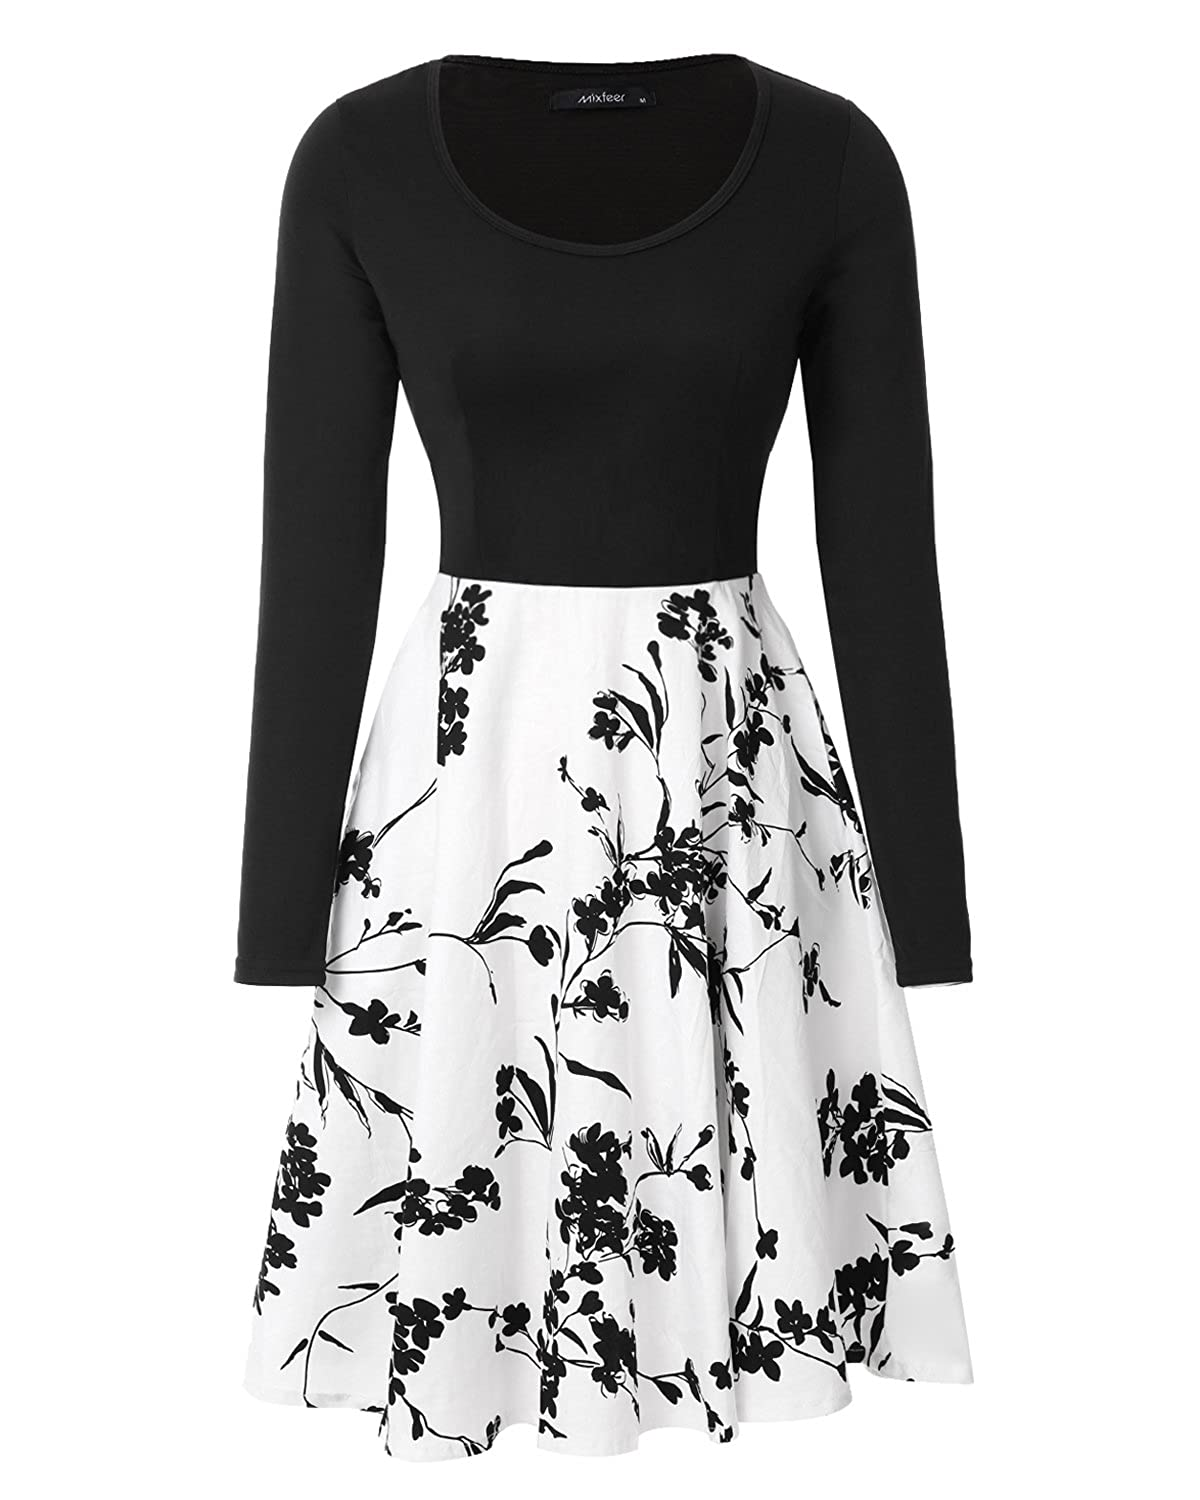 Mixfeer Women/'s Vintage Midi Dress Floral Scoop Neck Long Sleeve A-line Cocktail Party Swing Dress with Pockets